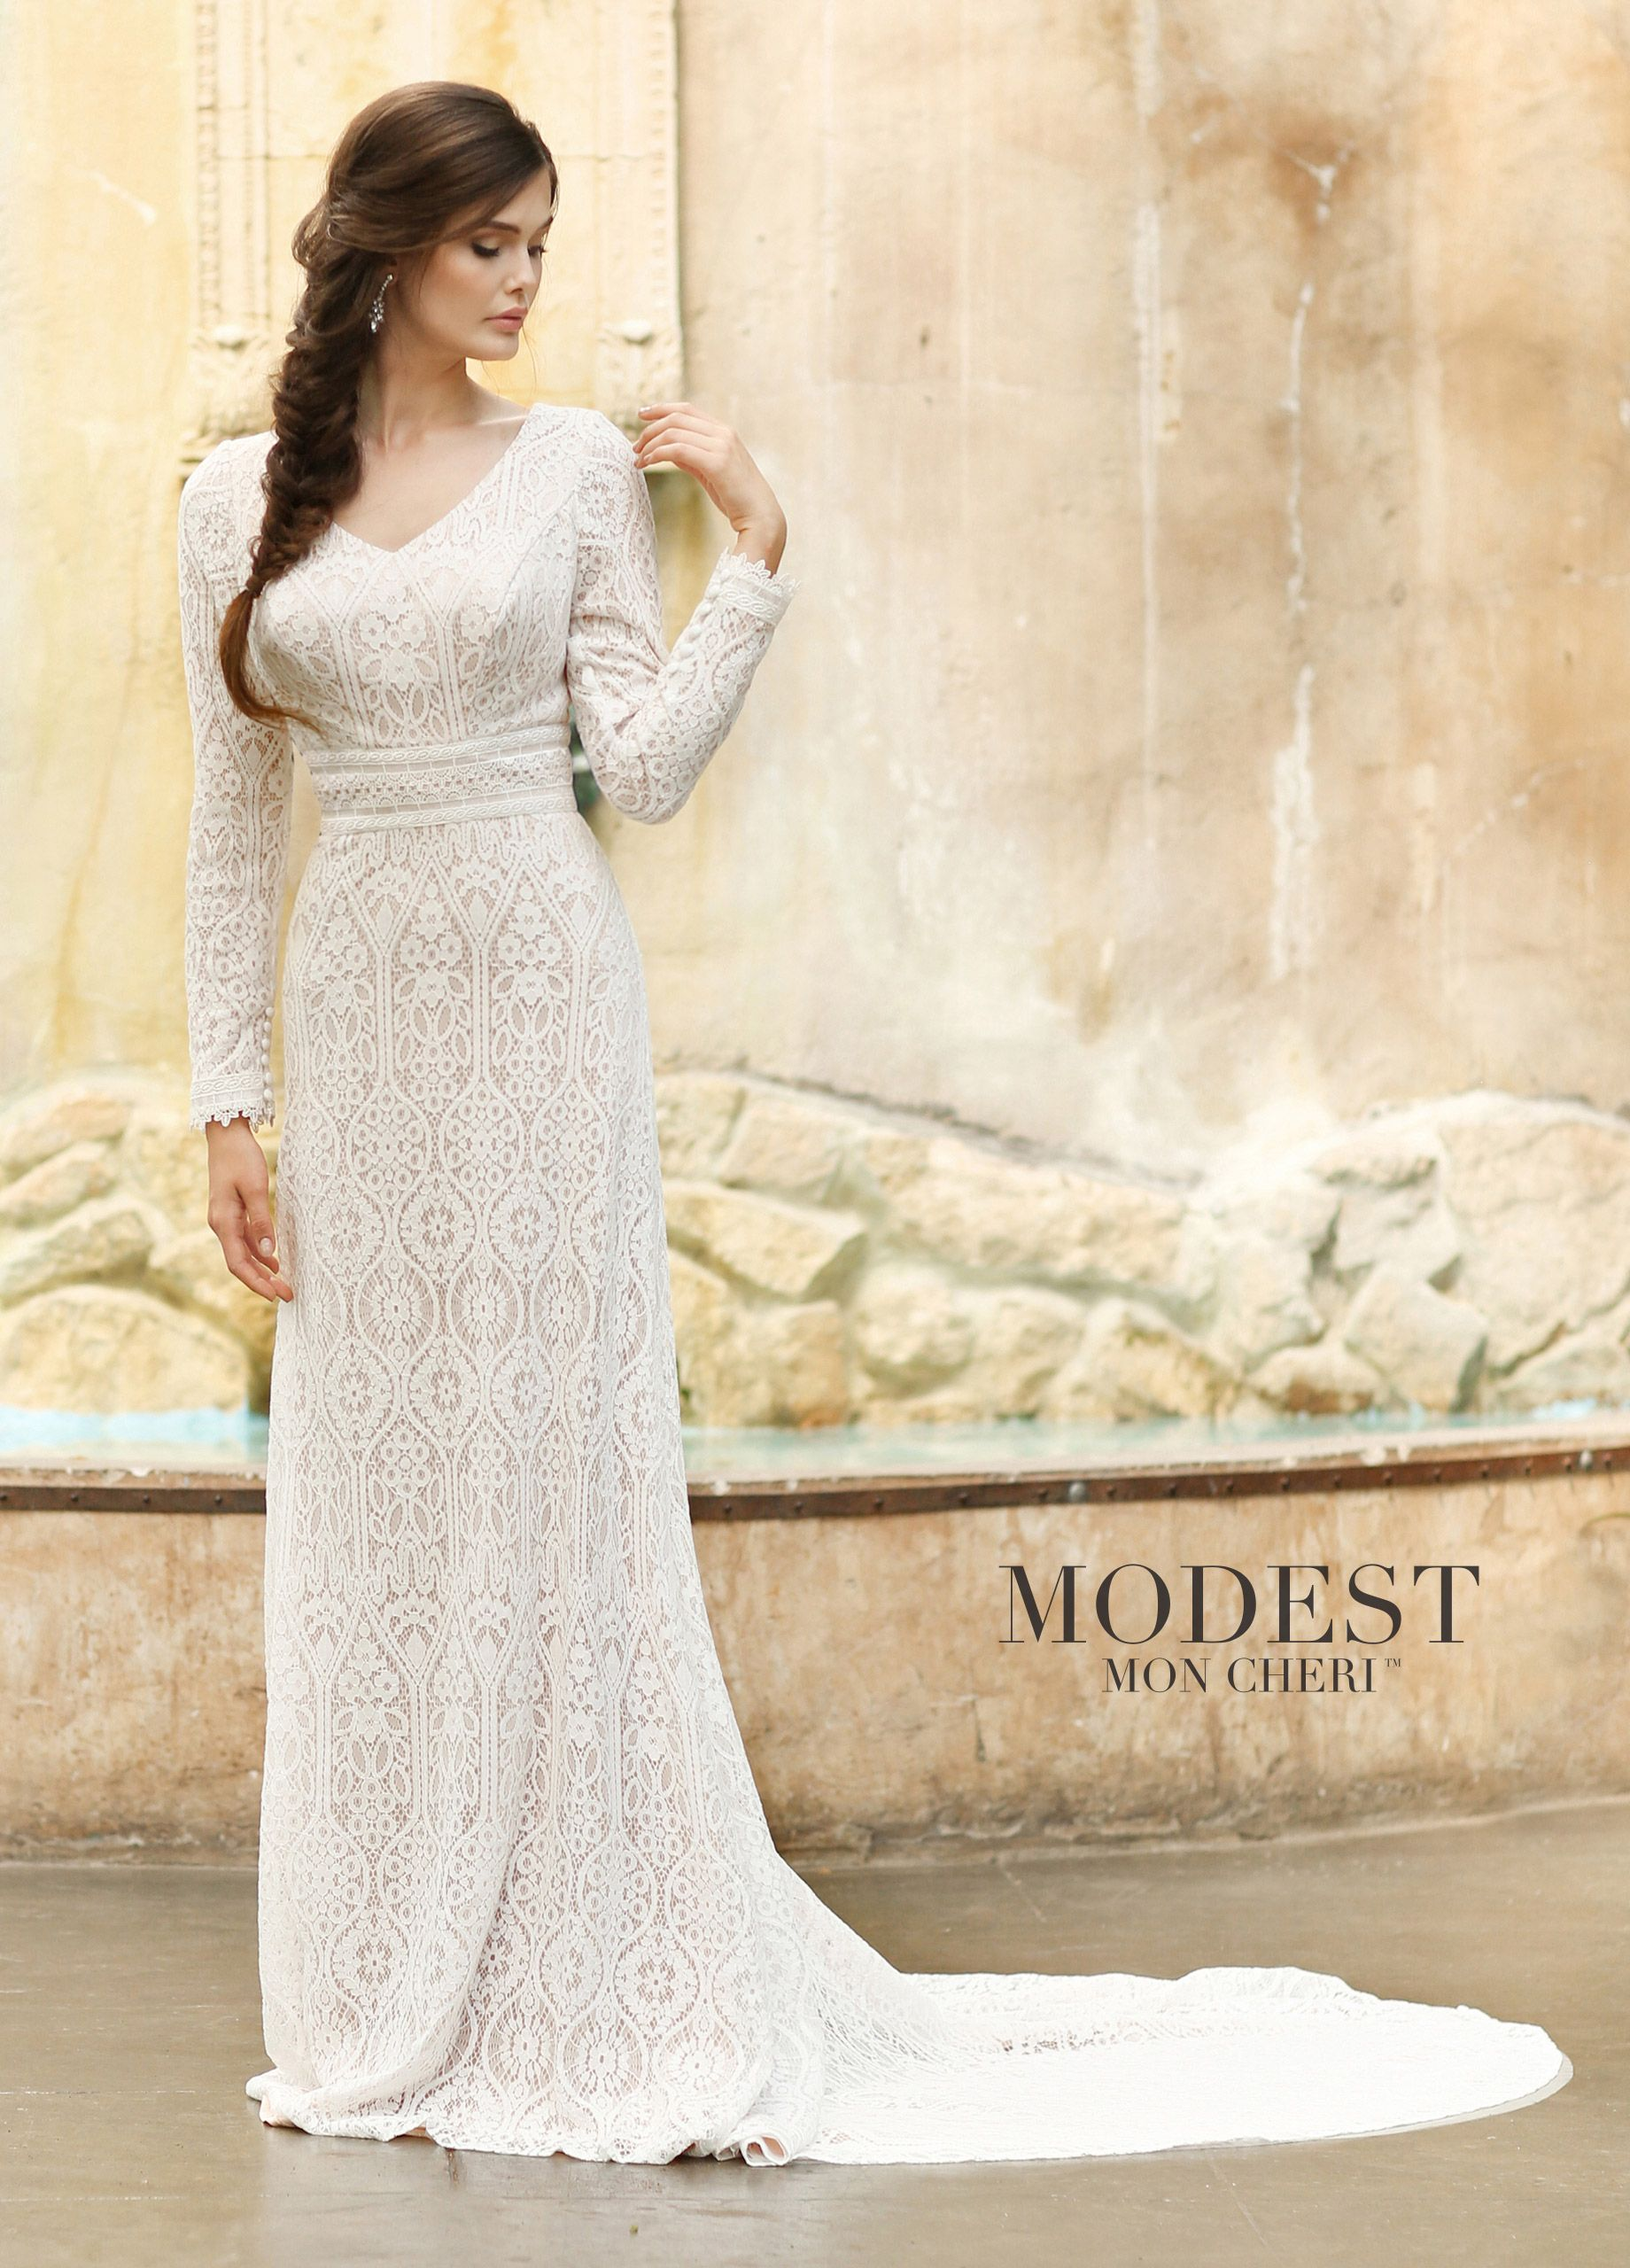 Soft Allover Lace Modest V Neckline Long Sleeve Wedding Dress In 2020 Mon Cheri Wedding Dresses Modest Wedding Dresses Wedding Dress Long Sleeve,Sweetheart Neckline Fairytale Wedding Dresses Ball Gown